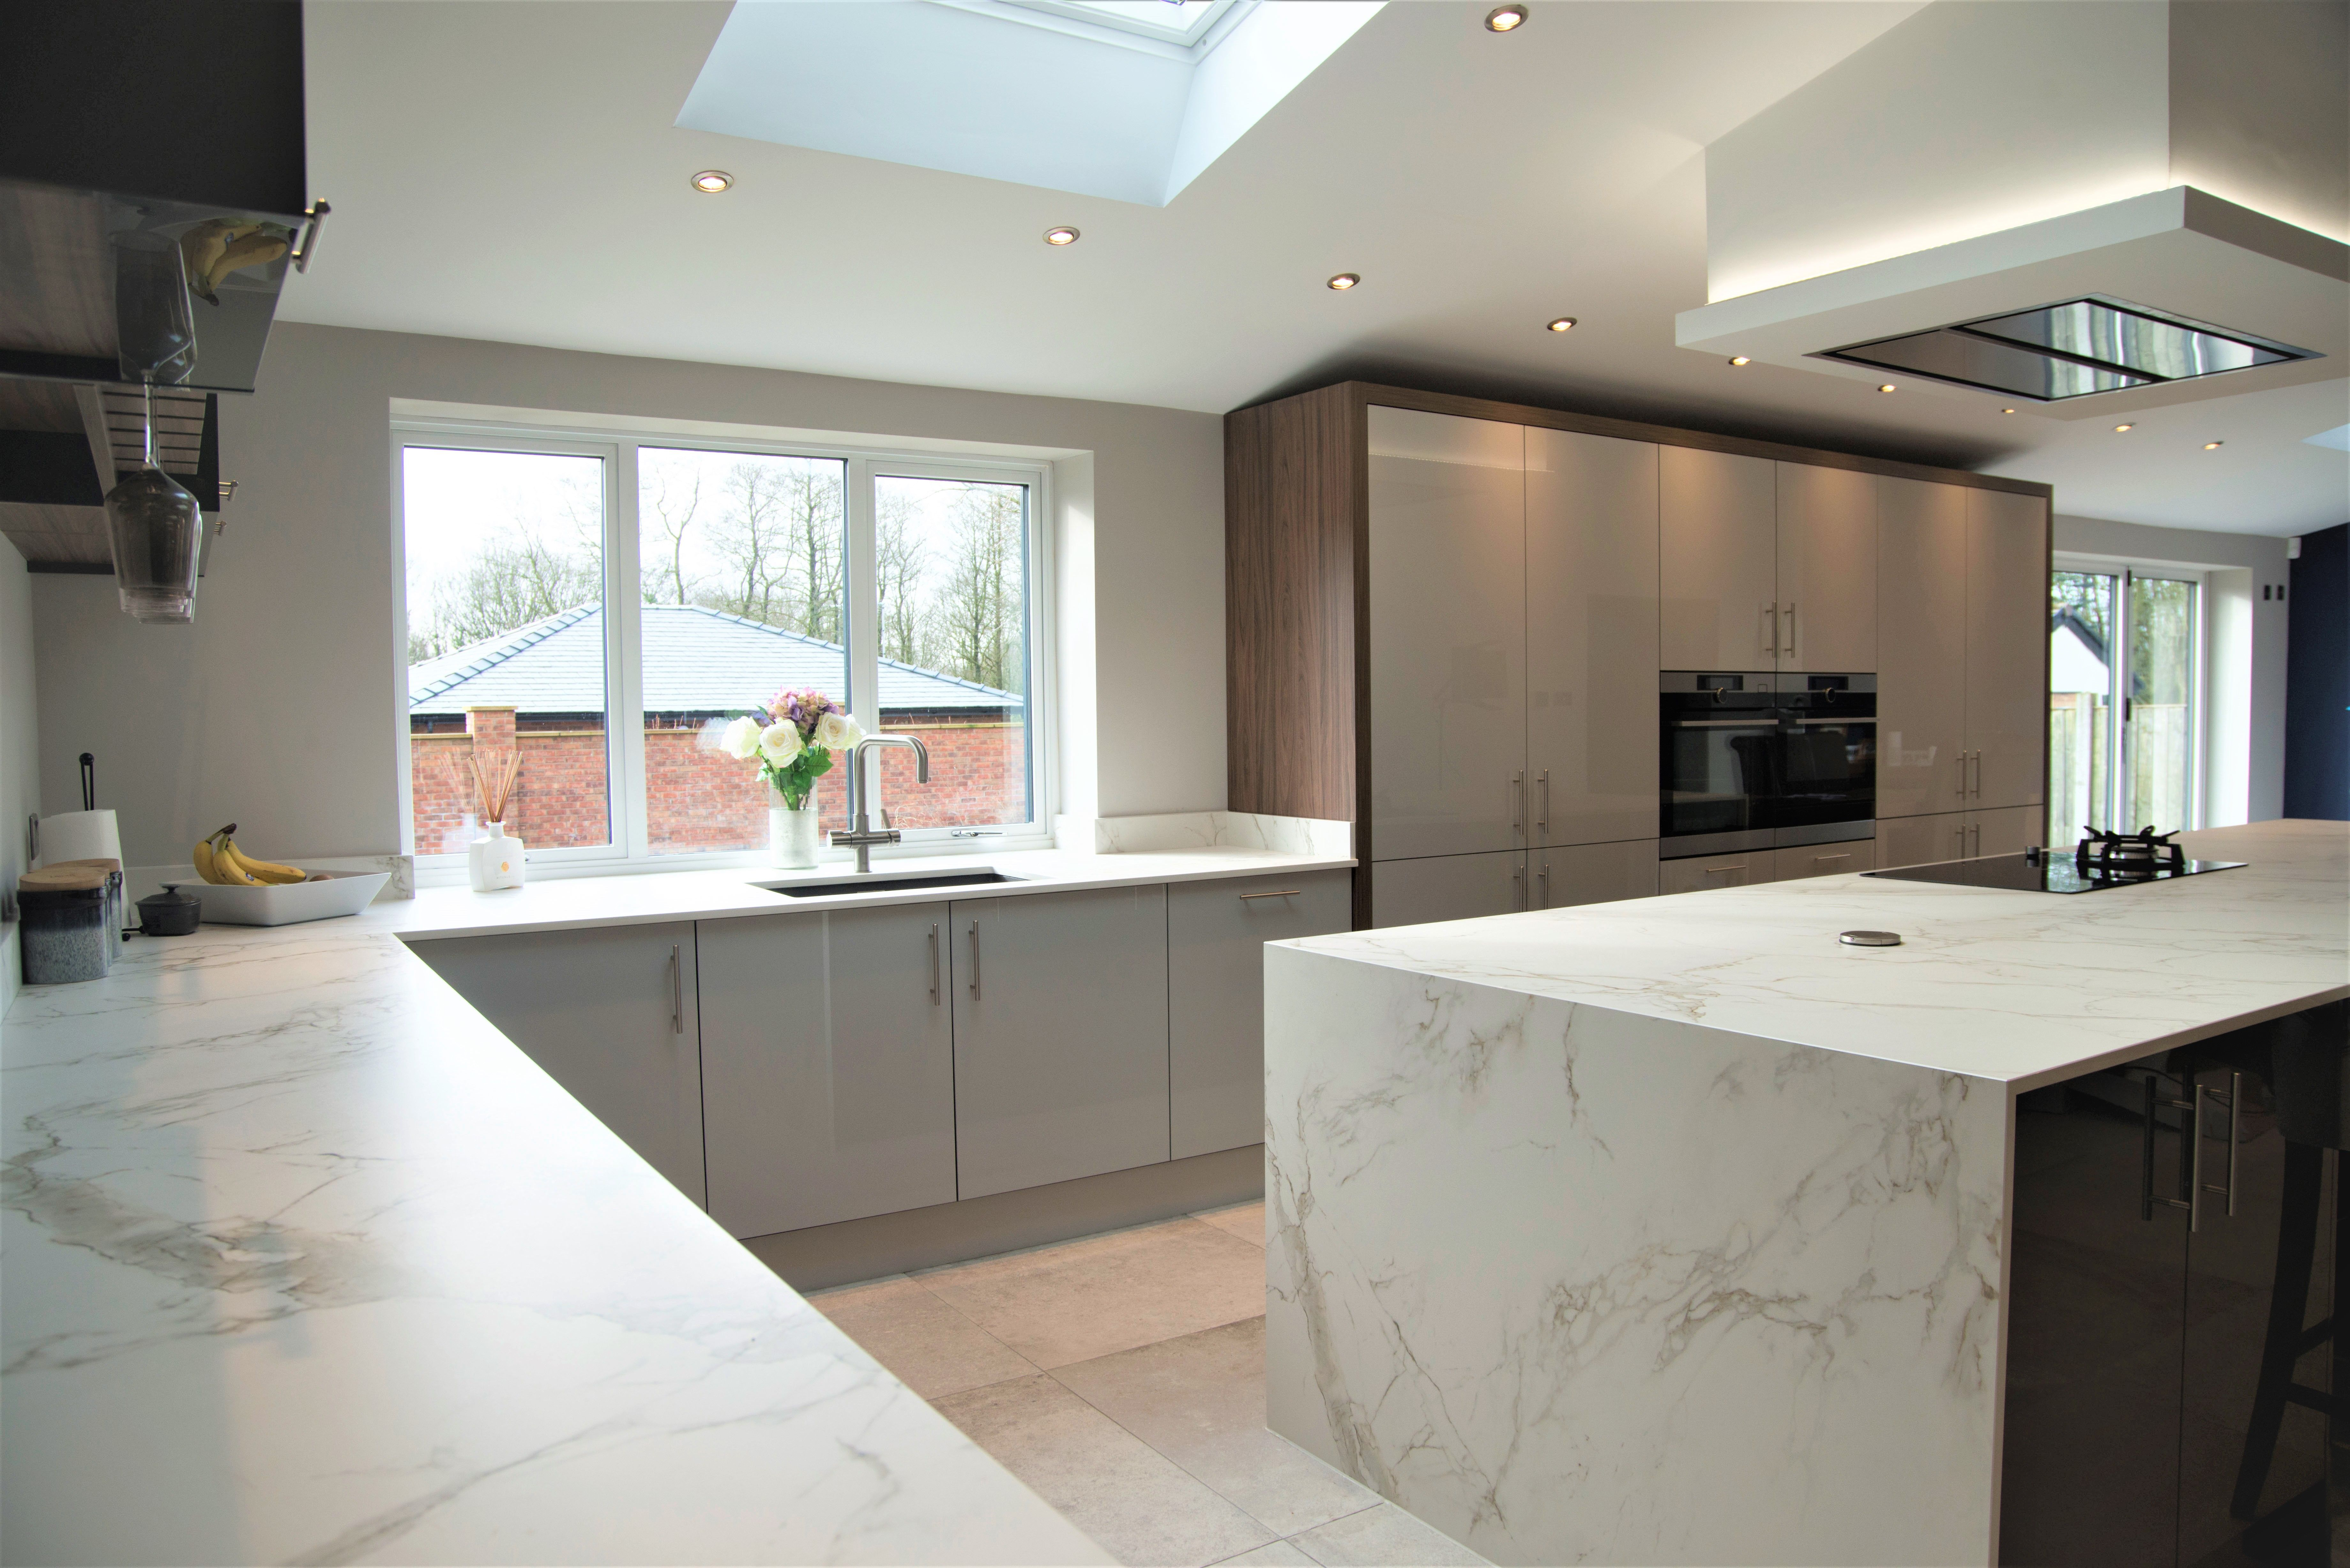 Kücheninsel Grau Masterclass Lumina Kitchen High Gloss Light Grey